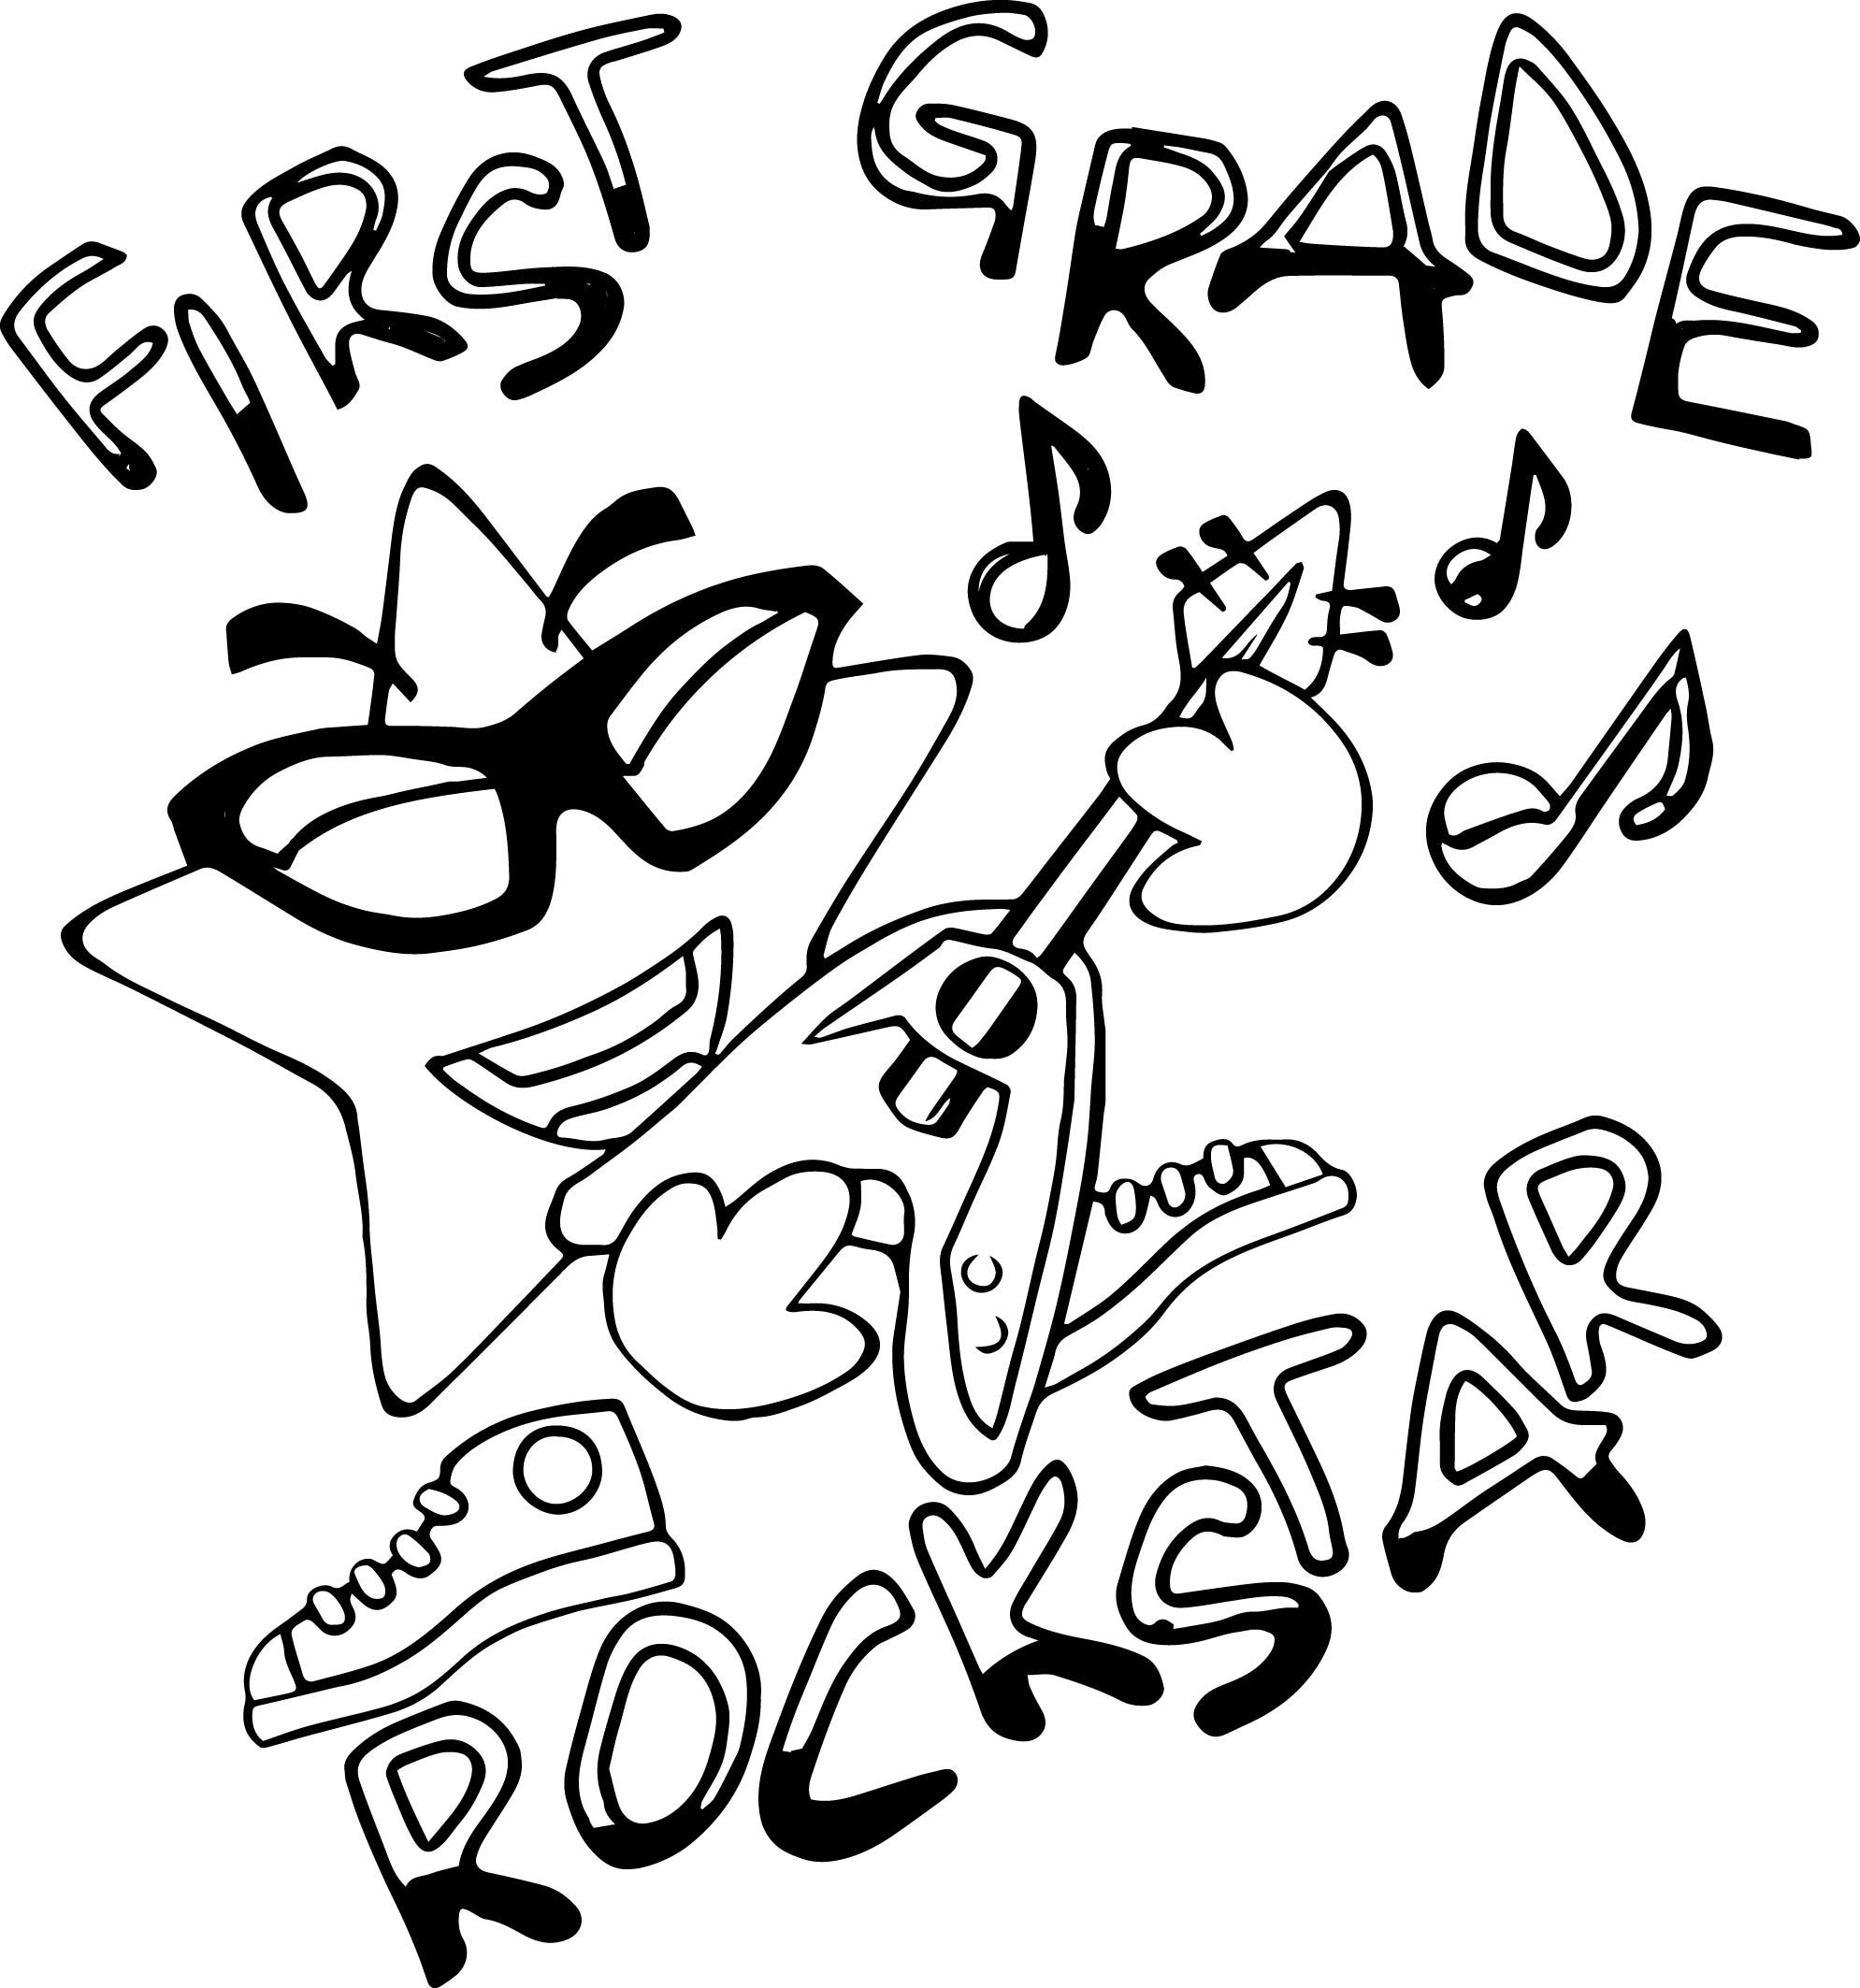 I Am A Rockstar Coloring Page Twisty Noodle With Images Cool